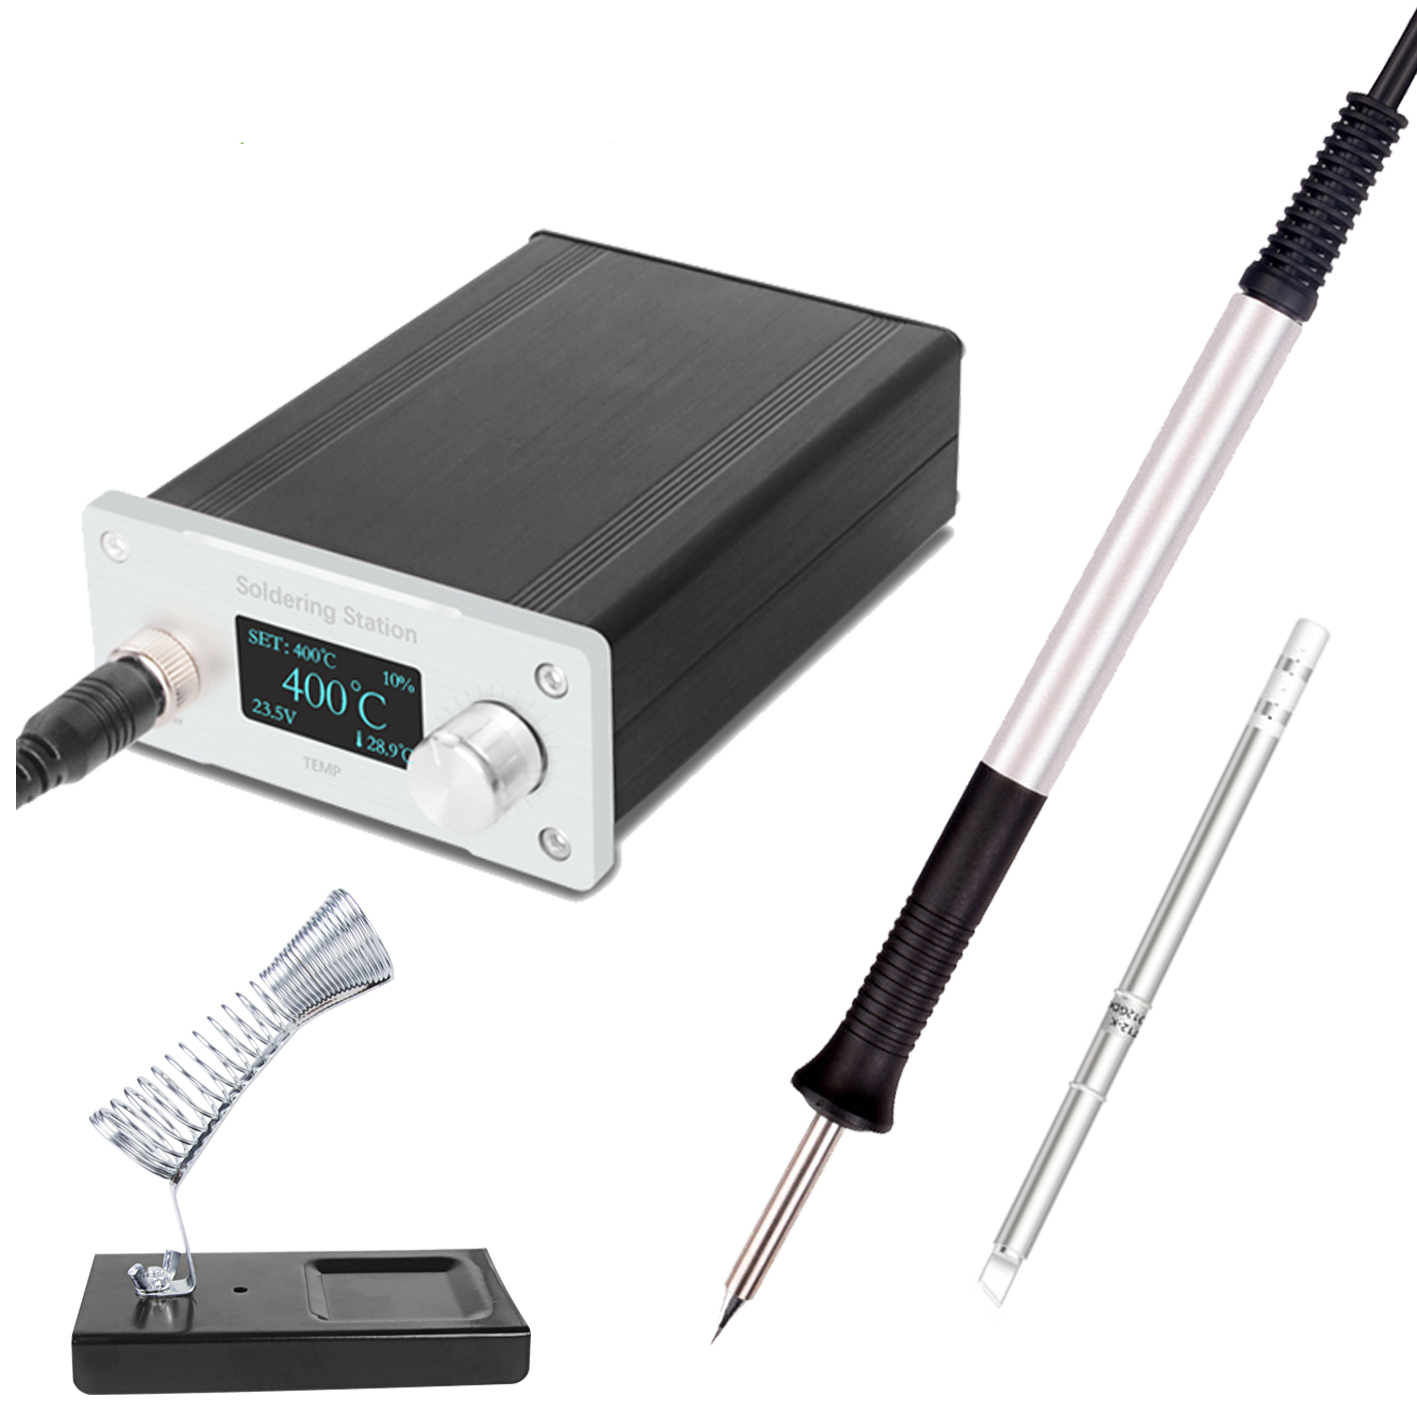 T12 Soldering Station STC OLED 1.3 Display Adjustable Temperature Digital Electronic With Soldering Tips Welding ToolsSoldering Stations   - AliExpress